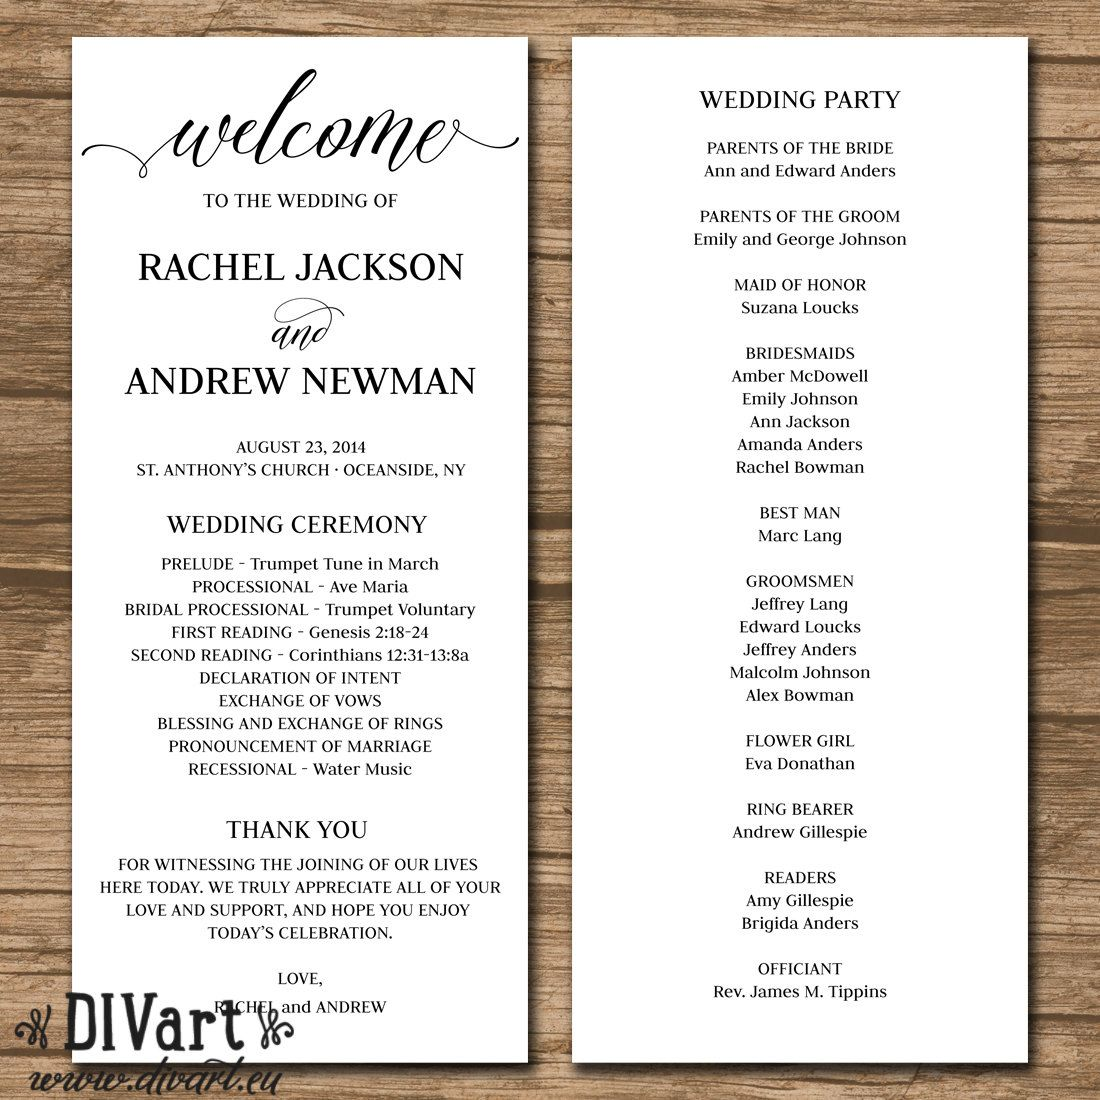 Rustic wedding program wedding ceremony order of events for Wedding processional order template